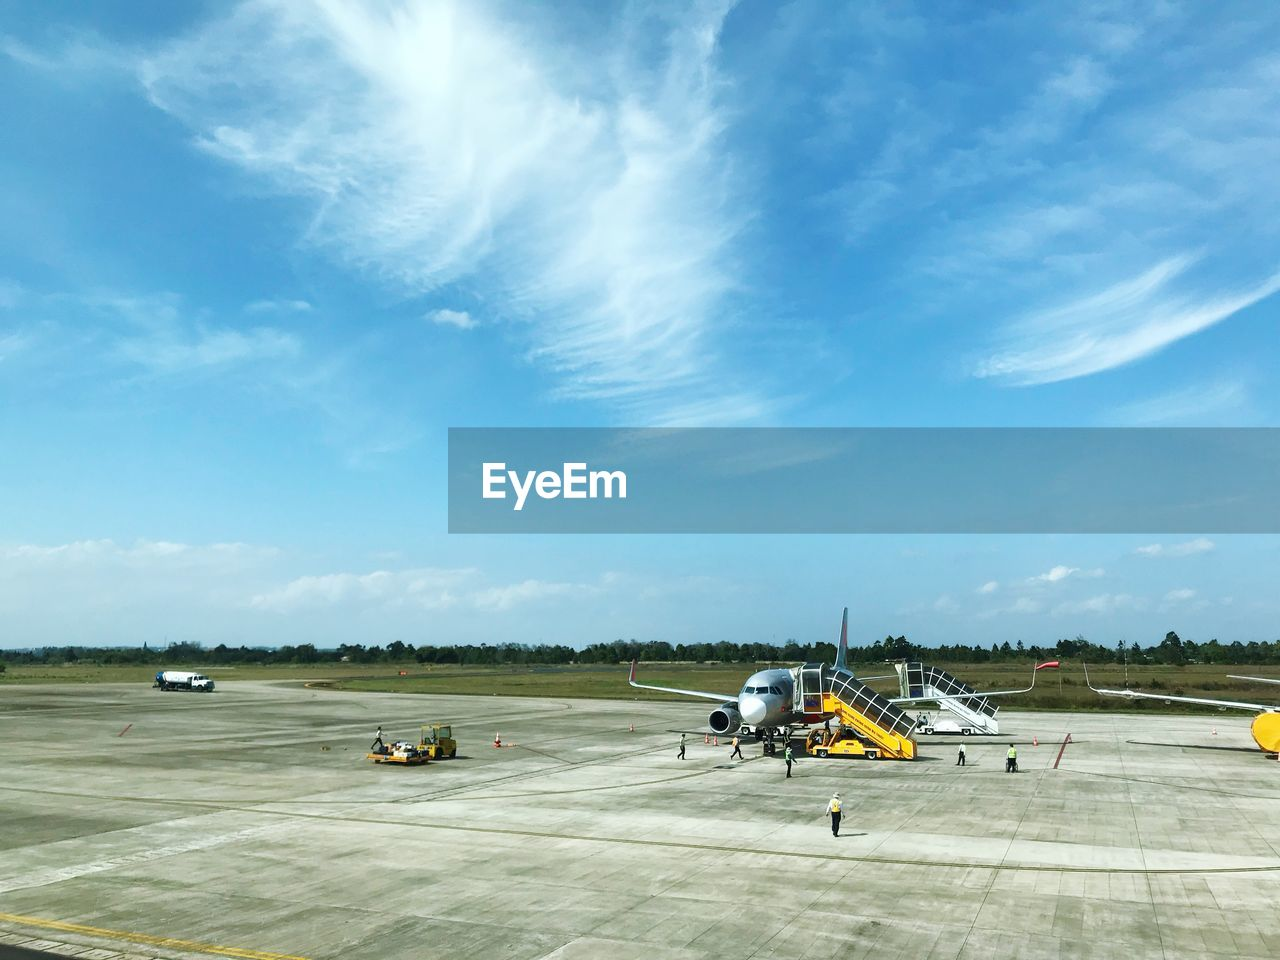 air vehicle, airport, airport runway, airplane, mode of transportation, transportation, sky, cloud - sky, travel, runway, nature, day, land vehicle, sunlight, public transportation, no people, commercial airplane, road, aerospace industry, journey, outdoors